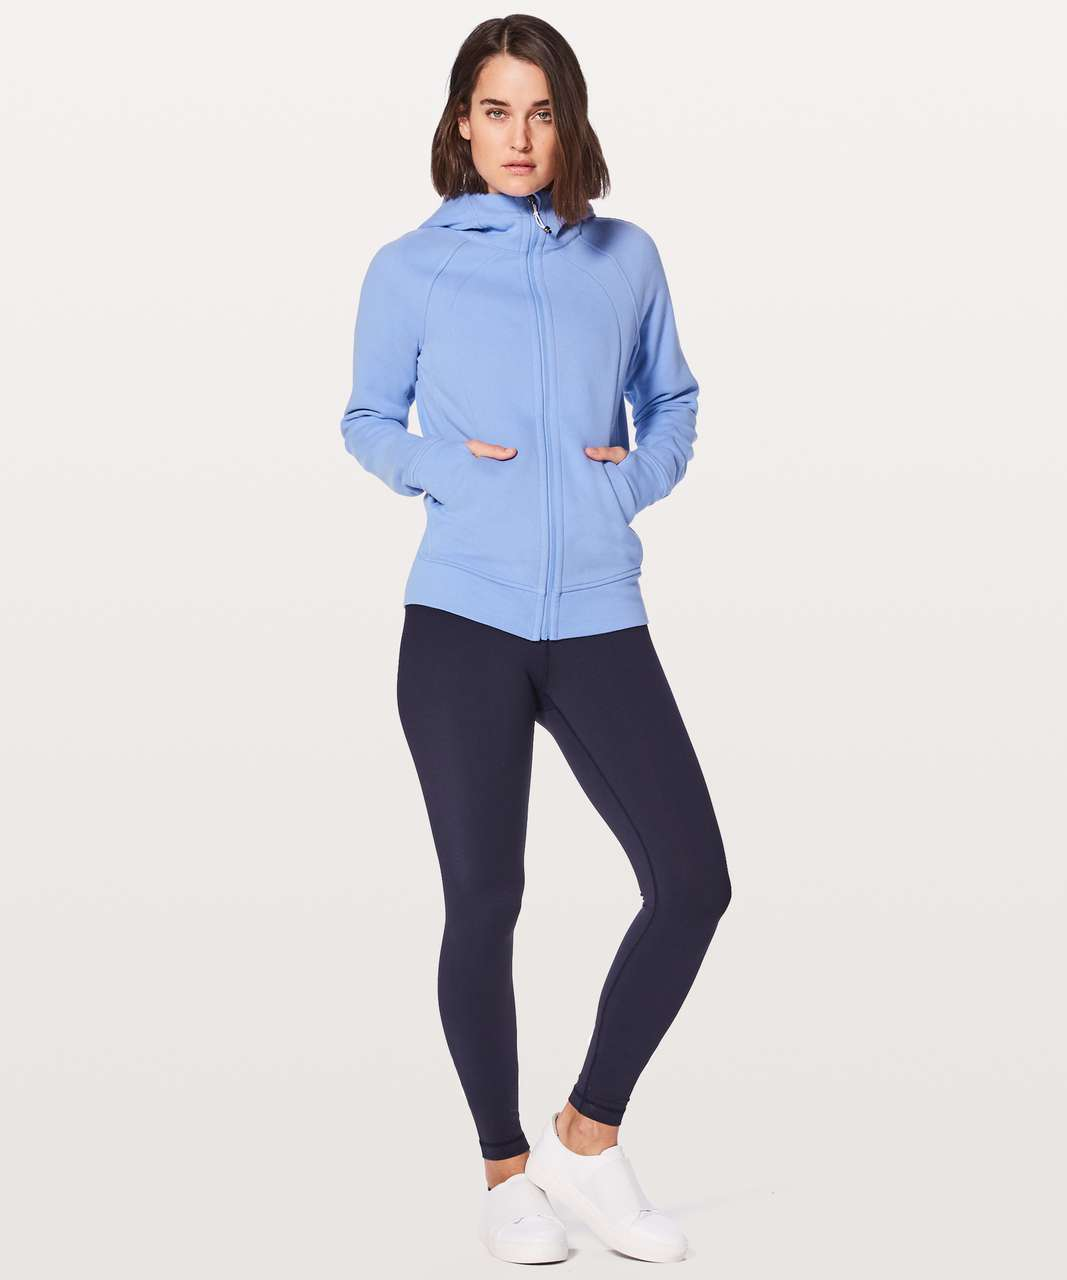 Lululemon Scuba Hoodie *Light Cotton Fleece - Hydrangea Blue